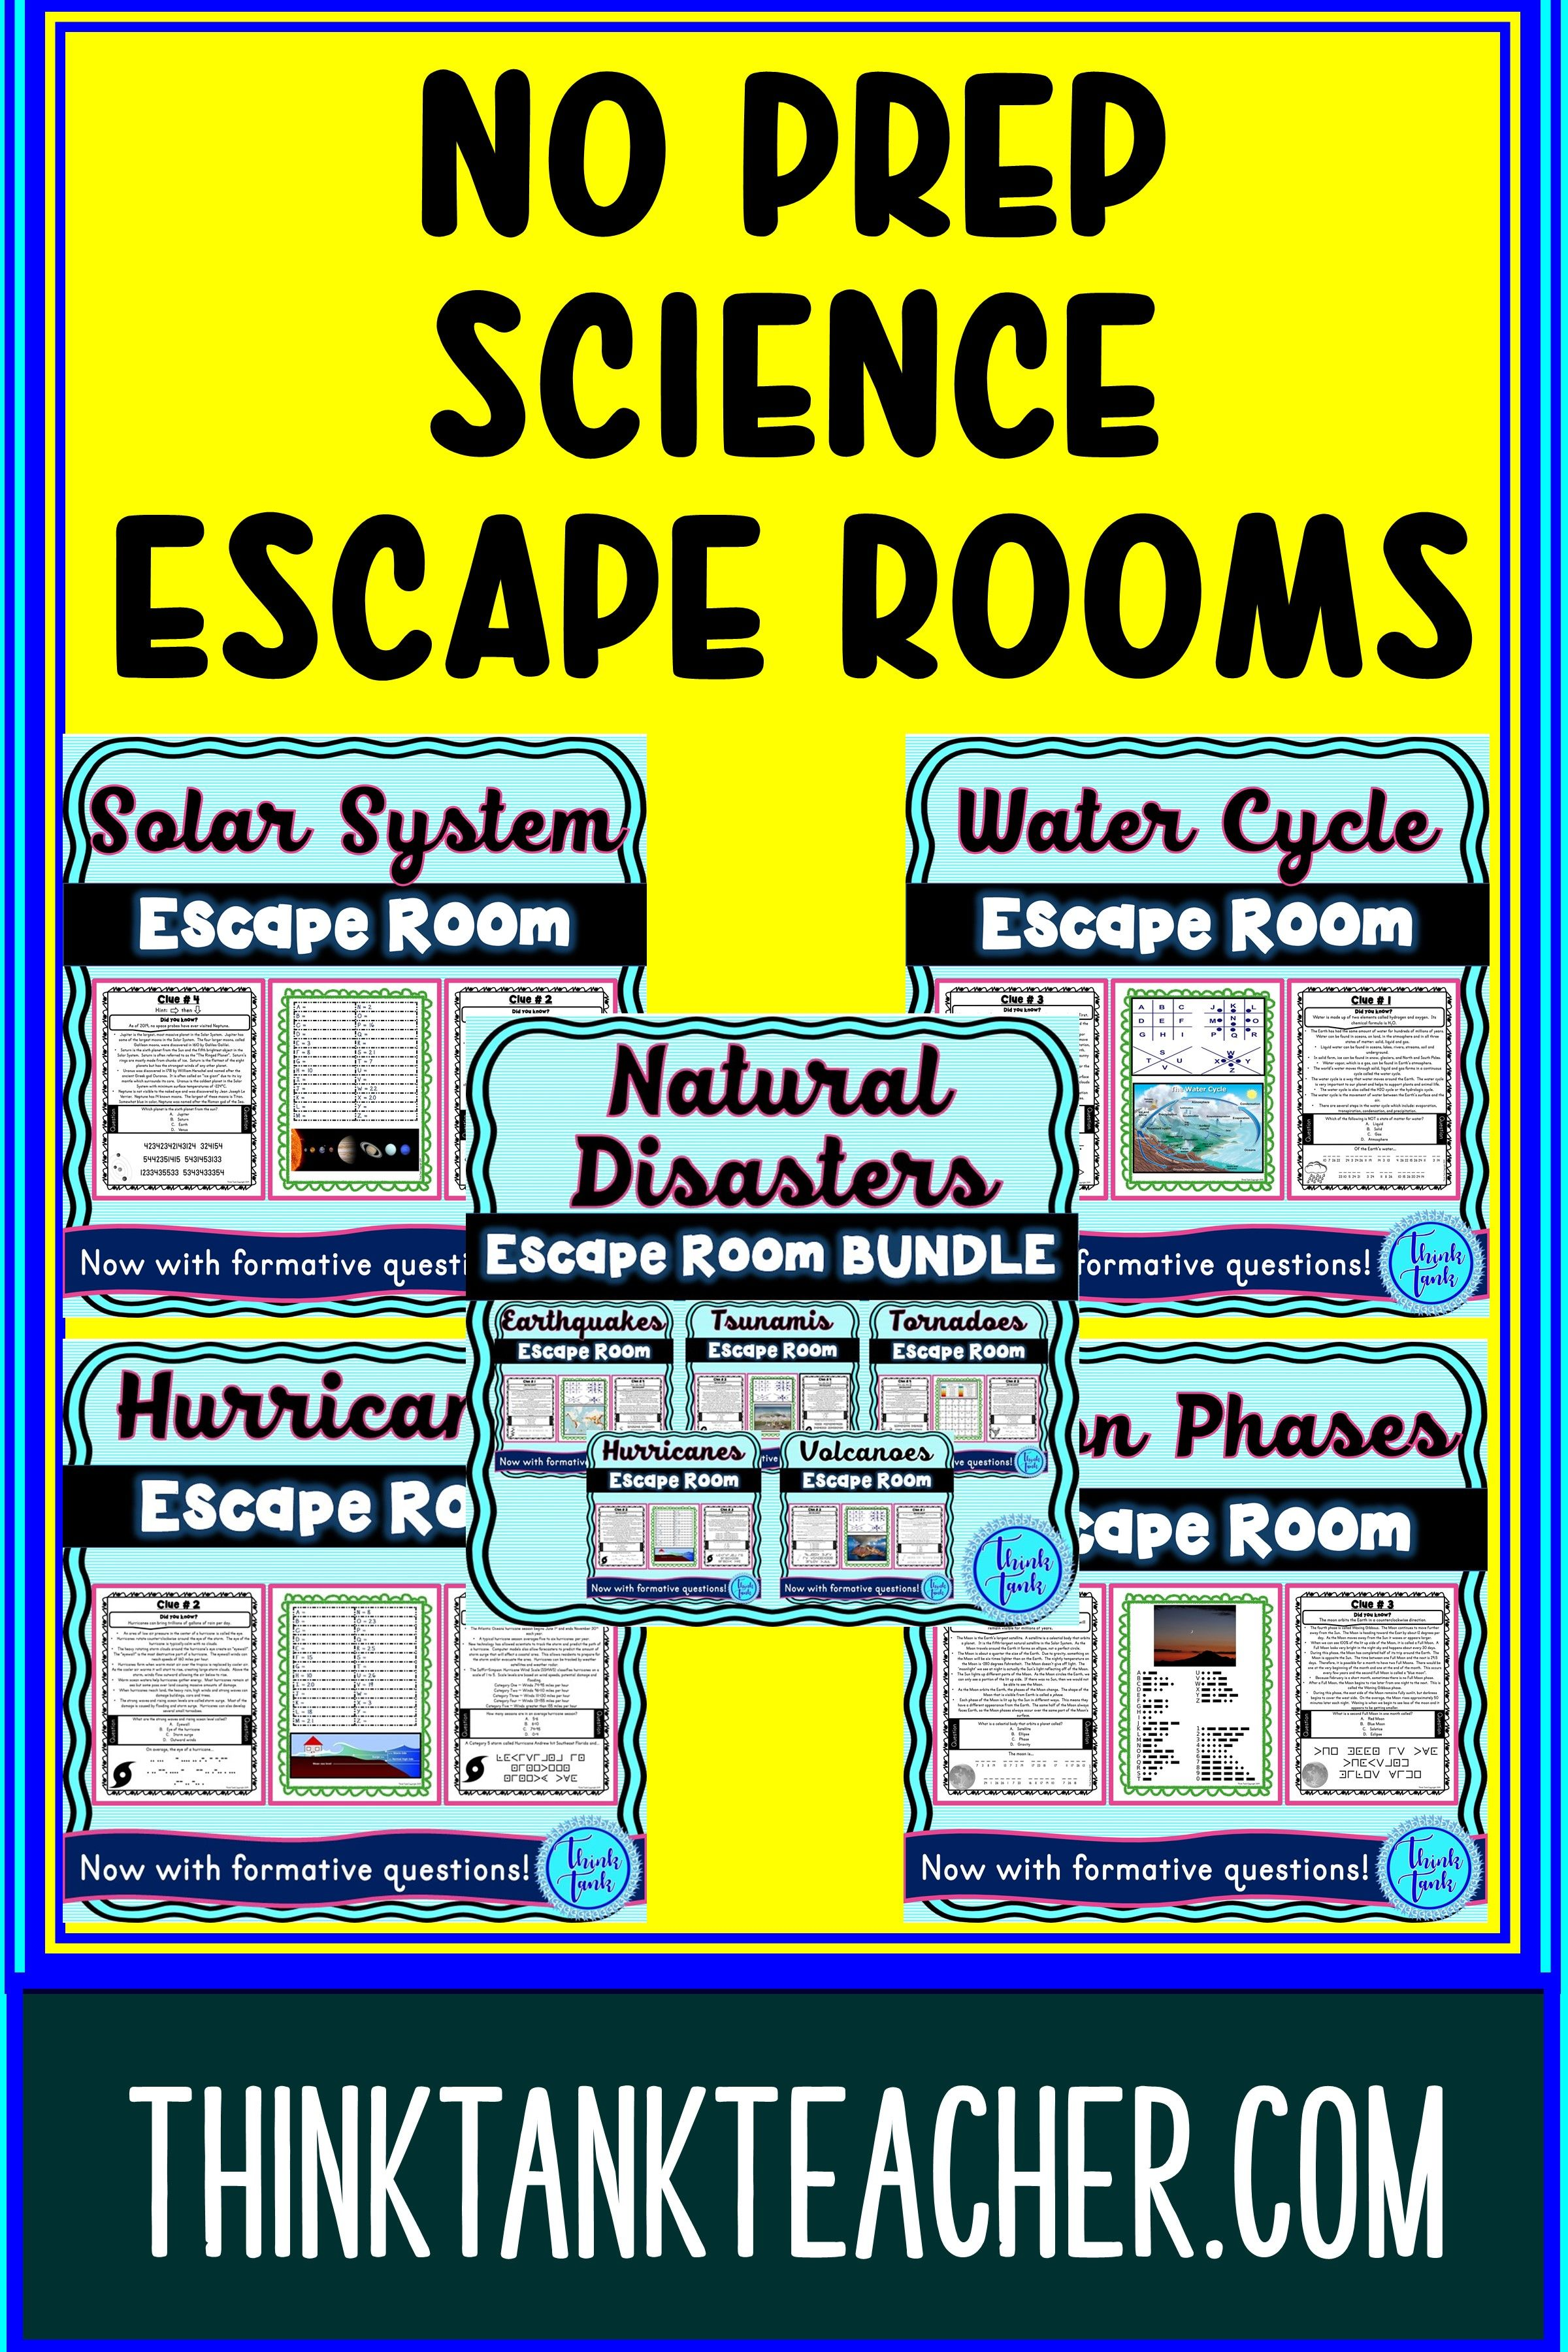 No Prep Science Escape Rooms for the classroom. Perfect activities for busy science teachers! Natural disasters, solar system, water cycle and more! Fun for grades 4-8. #scienceclassroom